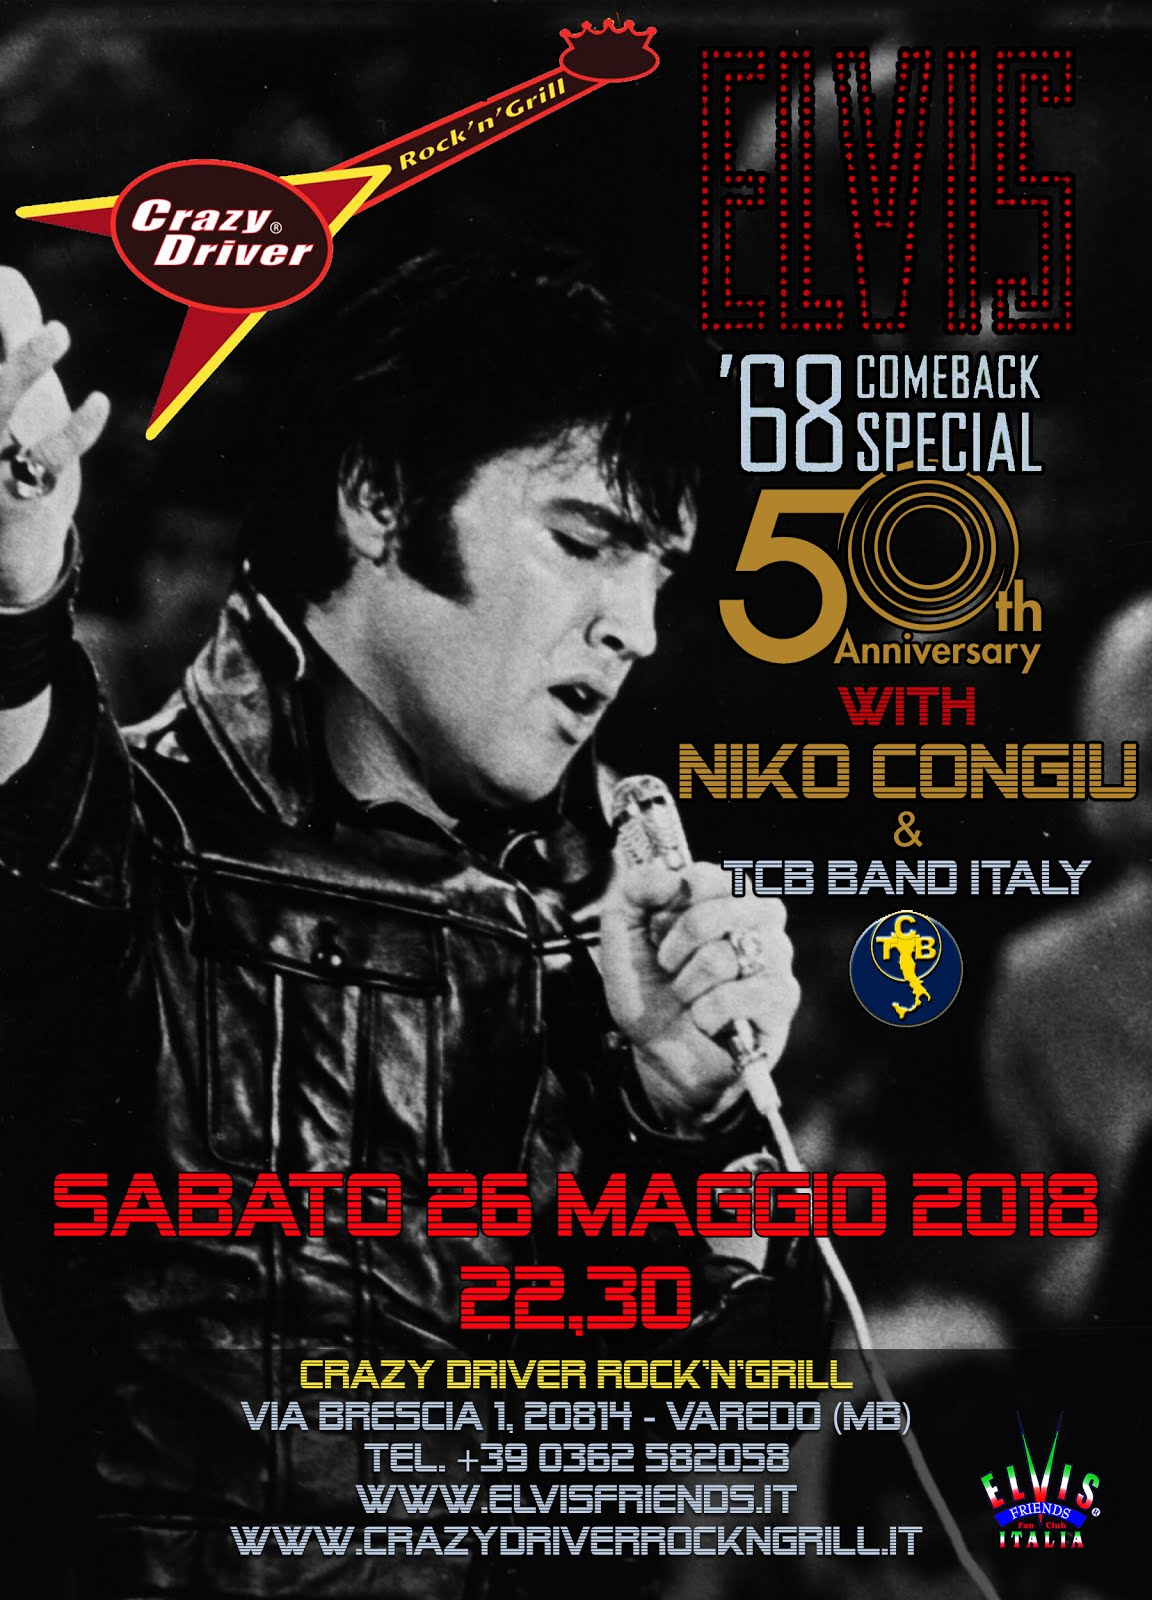 68 COMEBACK 50th ANNIVERSARY-Tribute